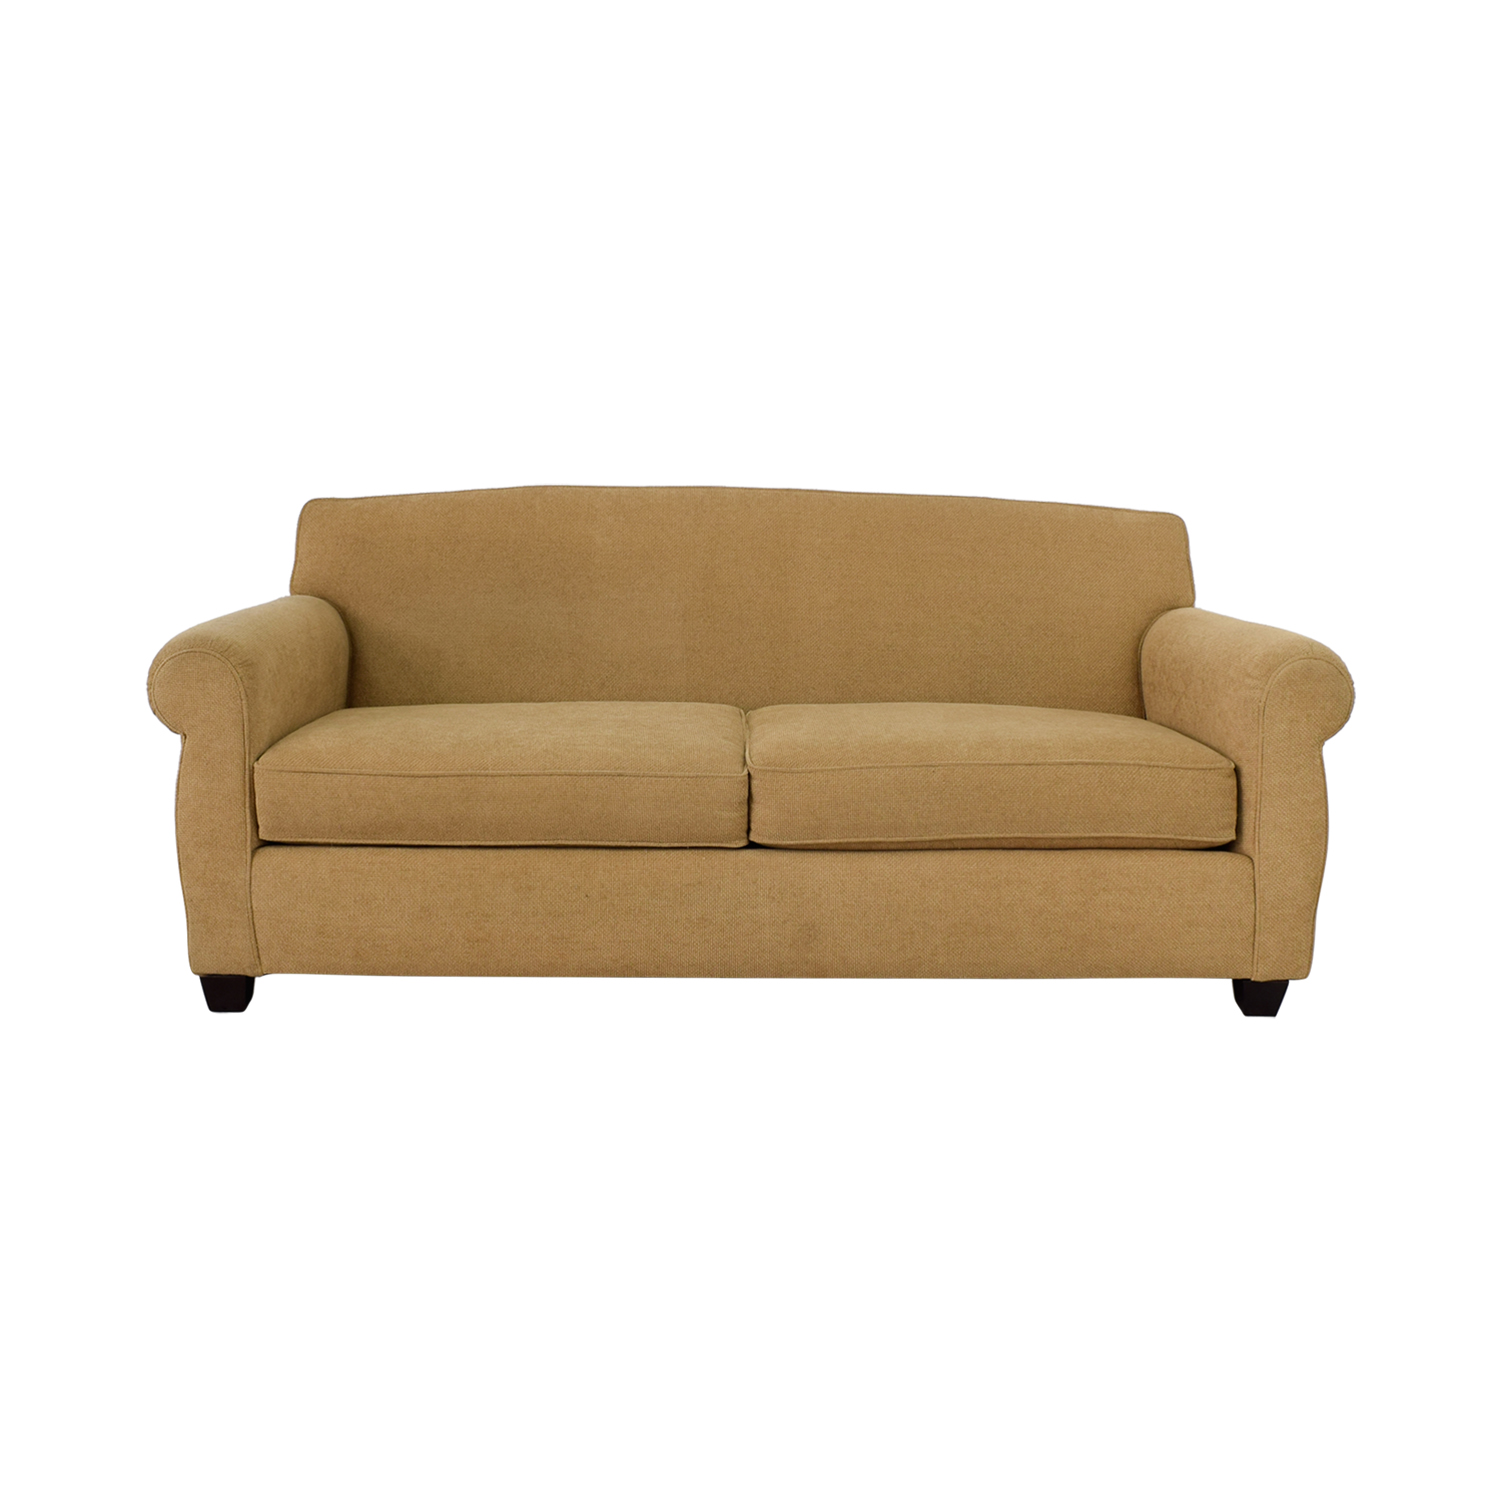 Thomasville Thomasville Tan Two-Cushion Sofa for sale